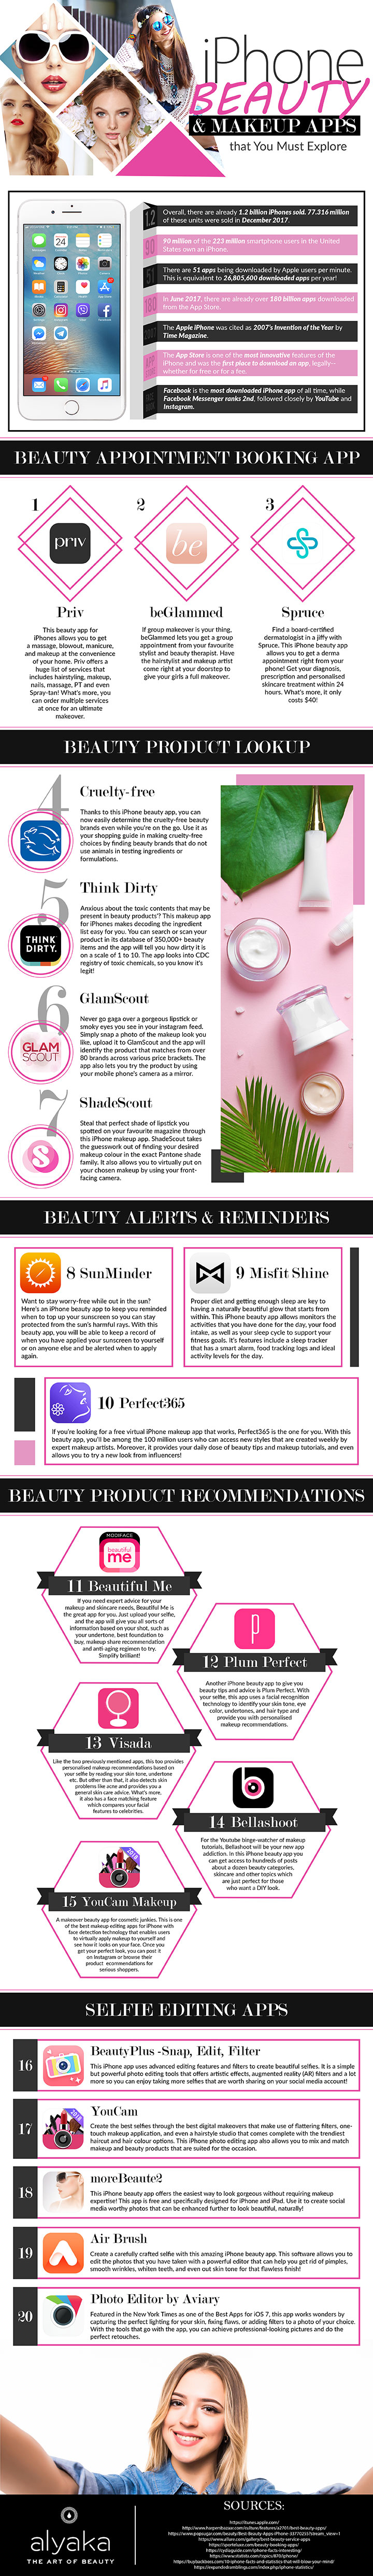 iPhone Beauty & Makeup Apps Infographic